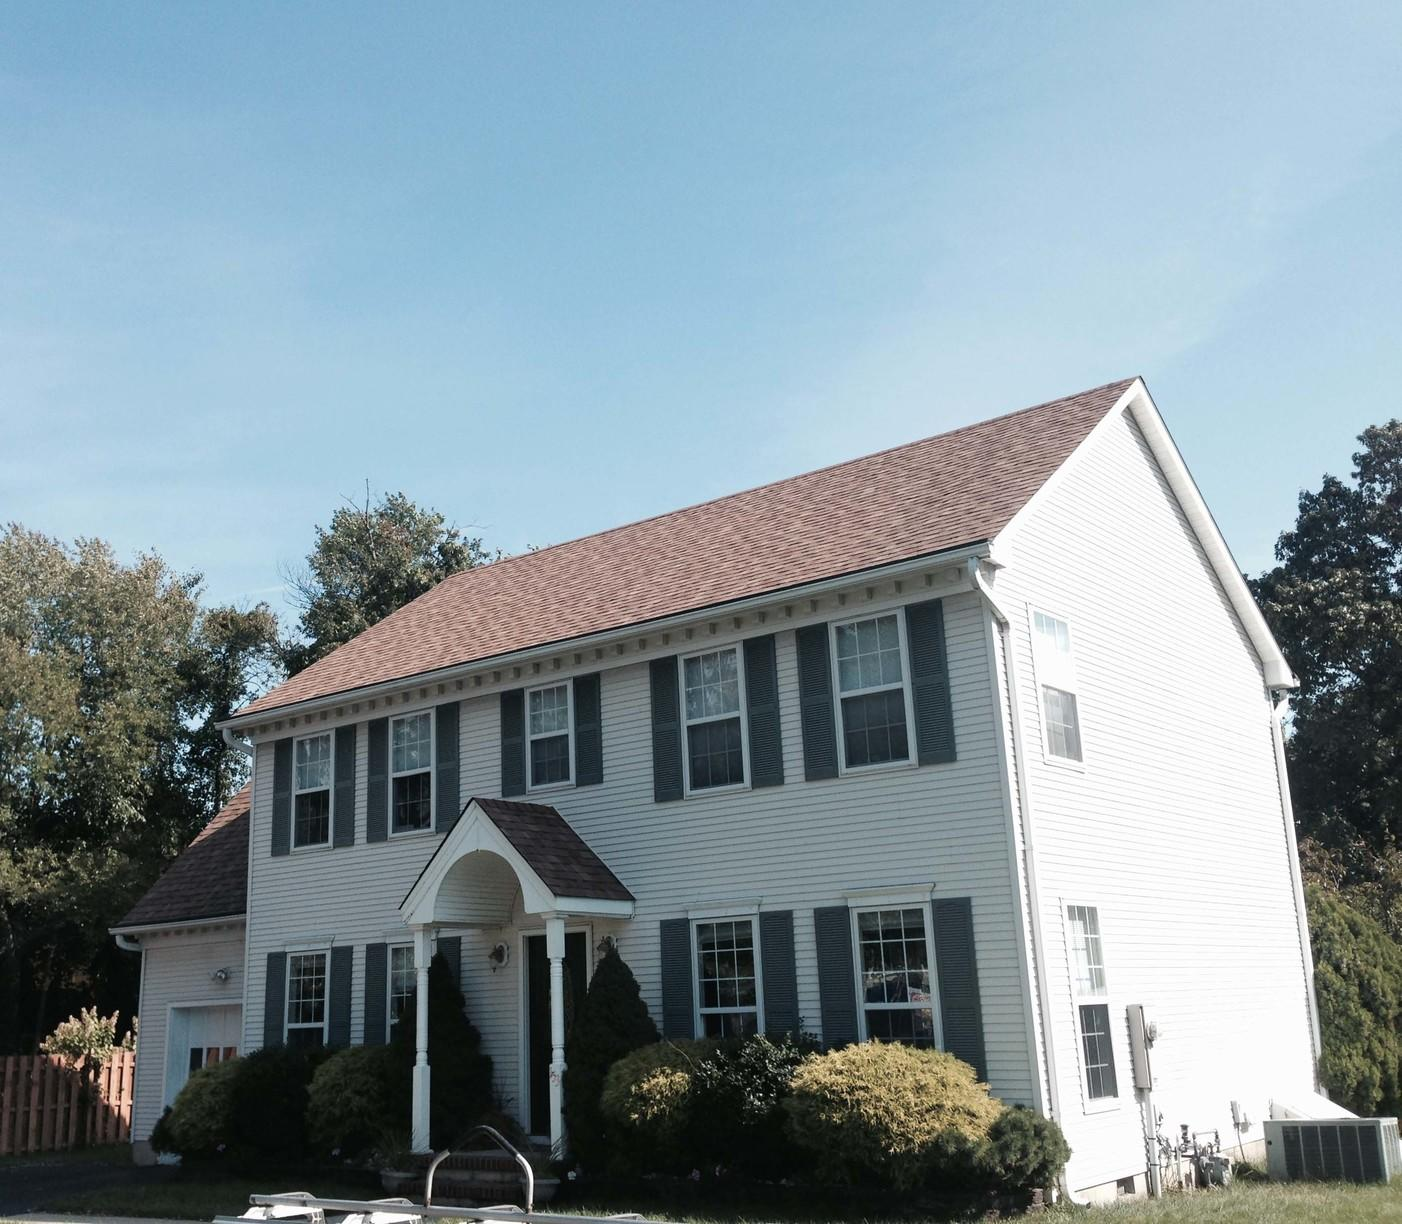 Roof Replacement in Keyport NJ - After Photo